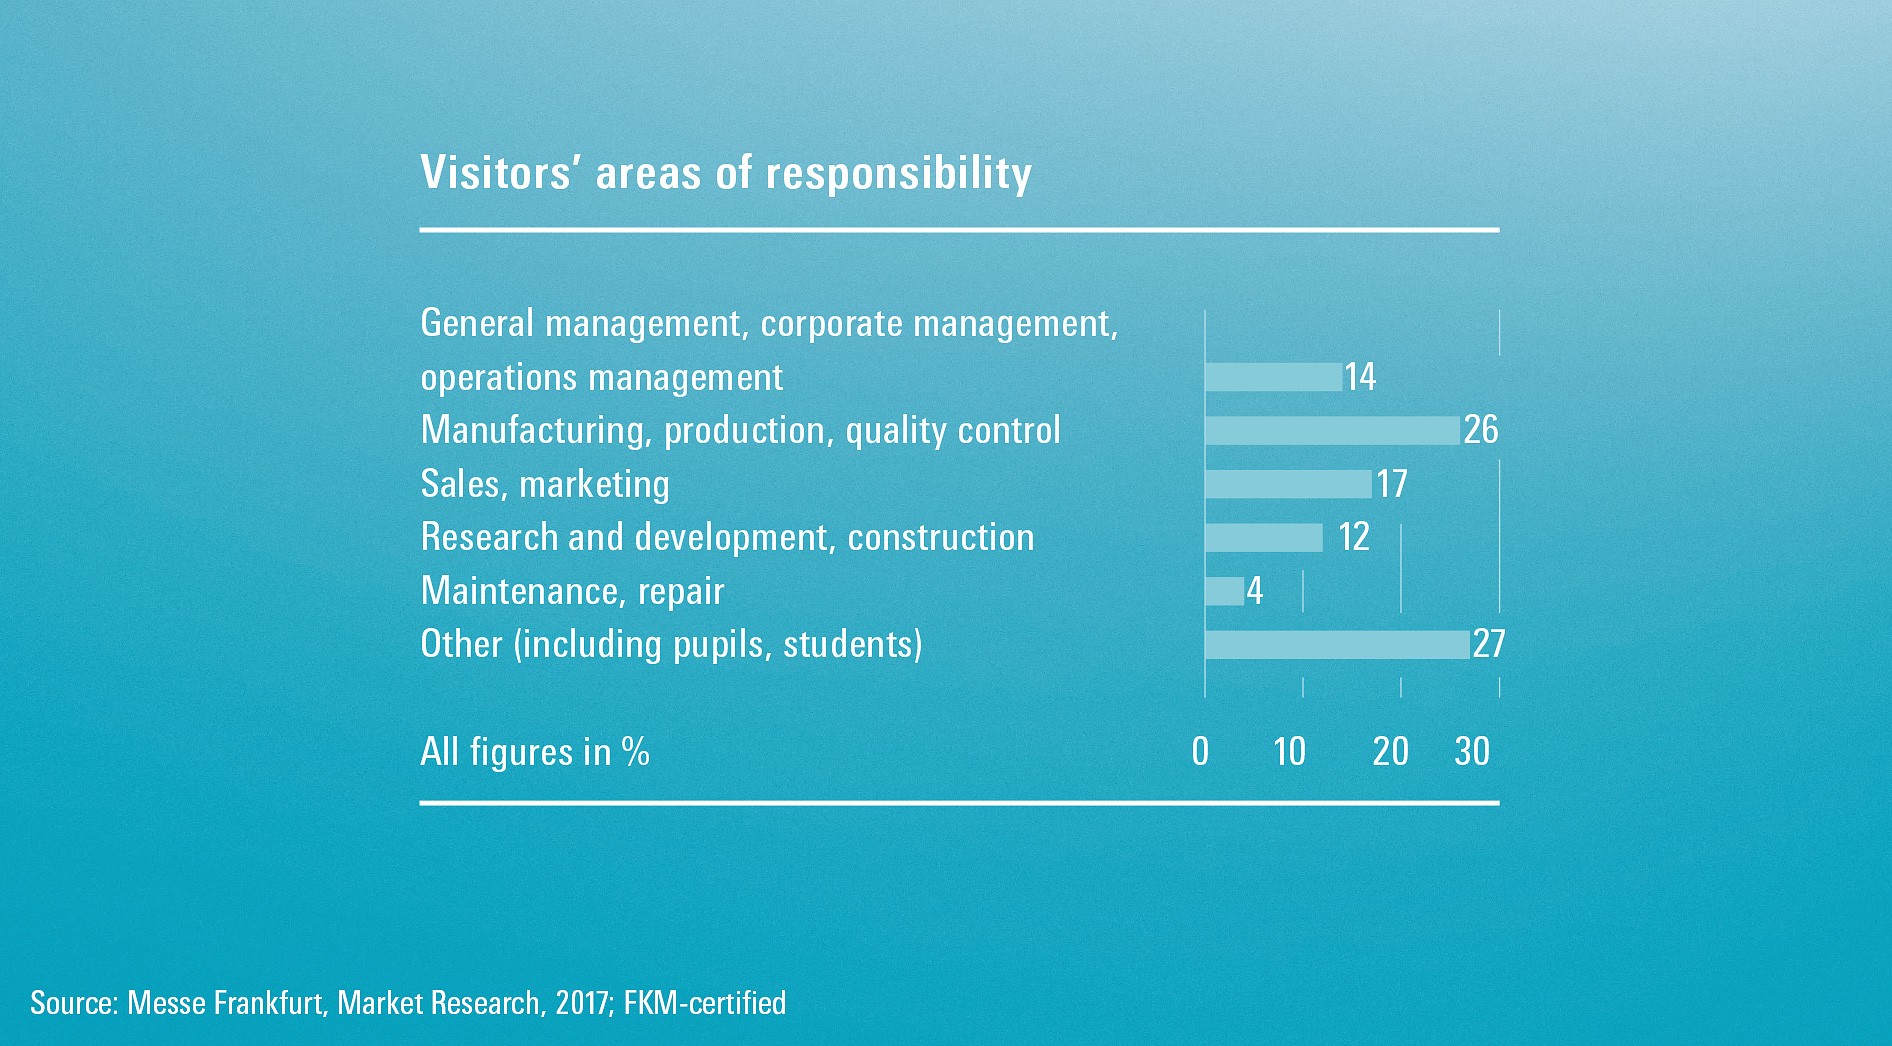 Visitors' areas of responsibility